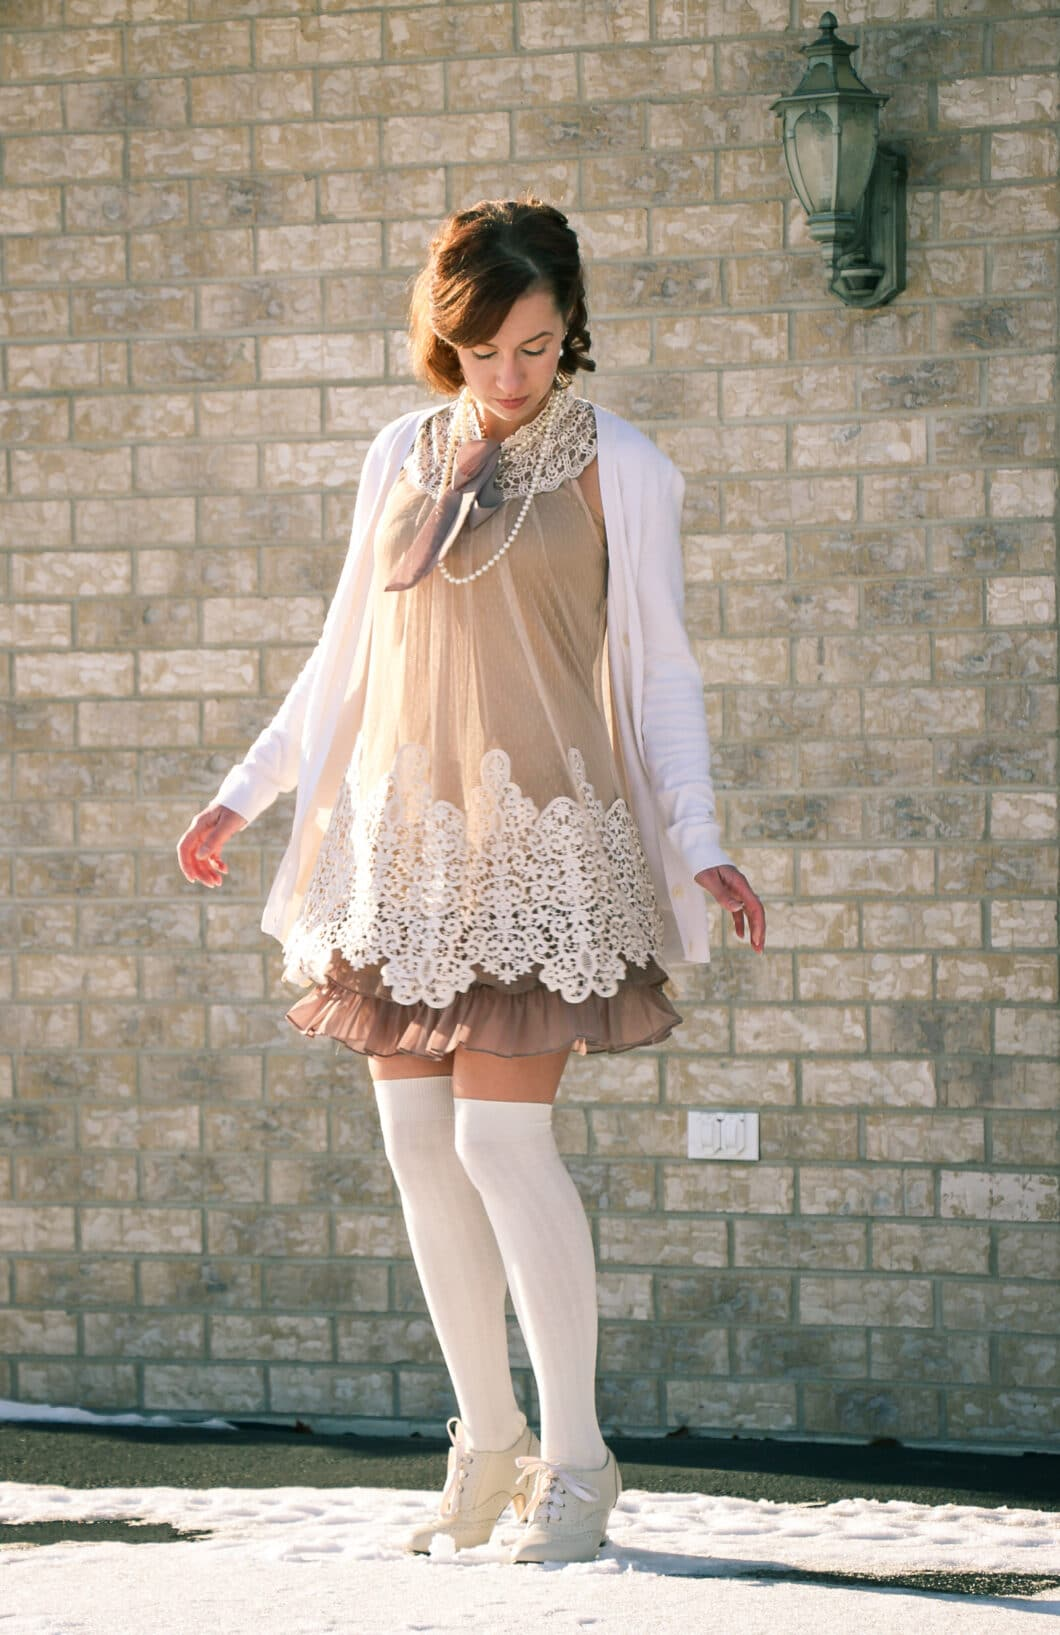 A Frilly Dress & a Feature